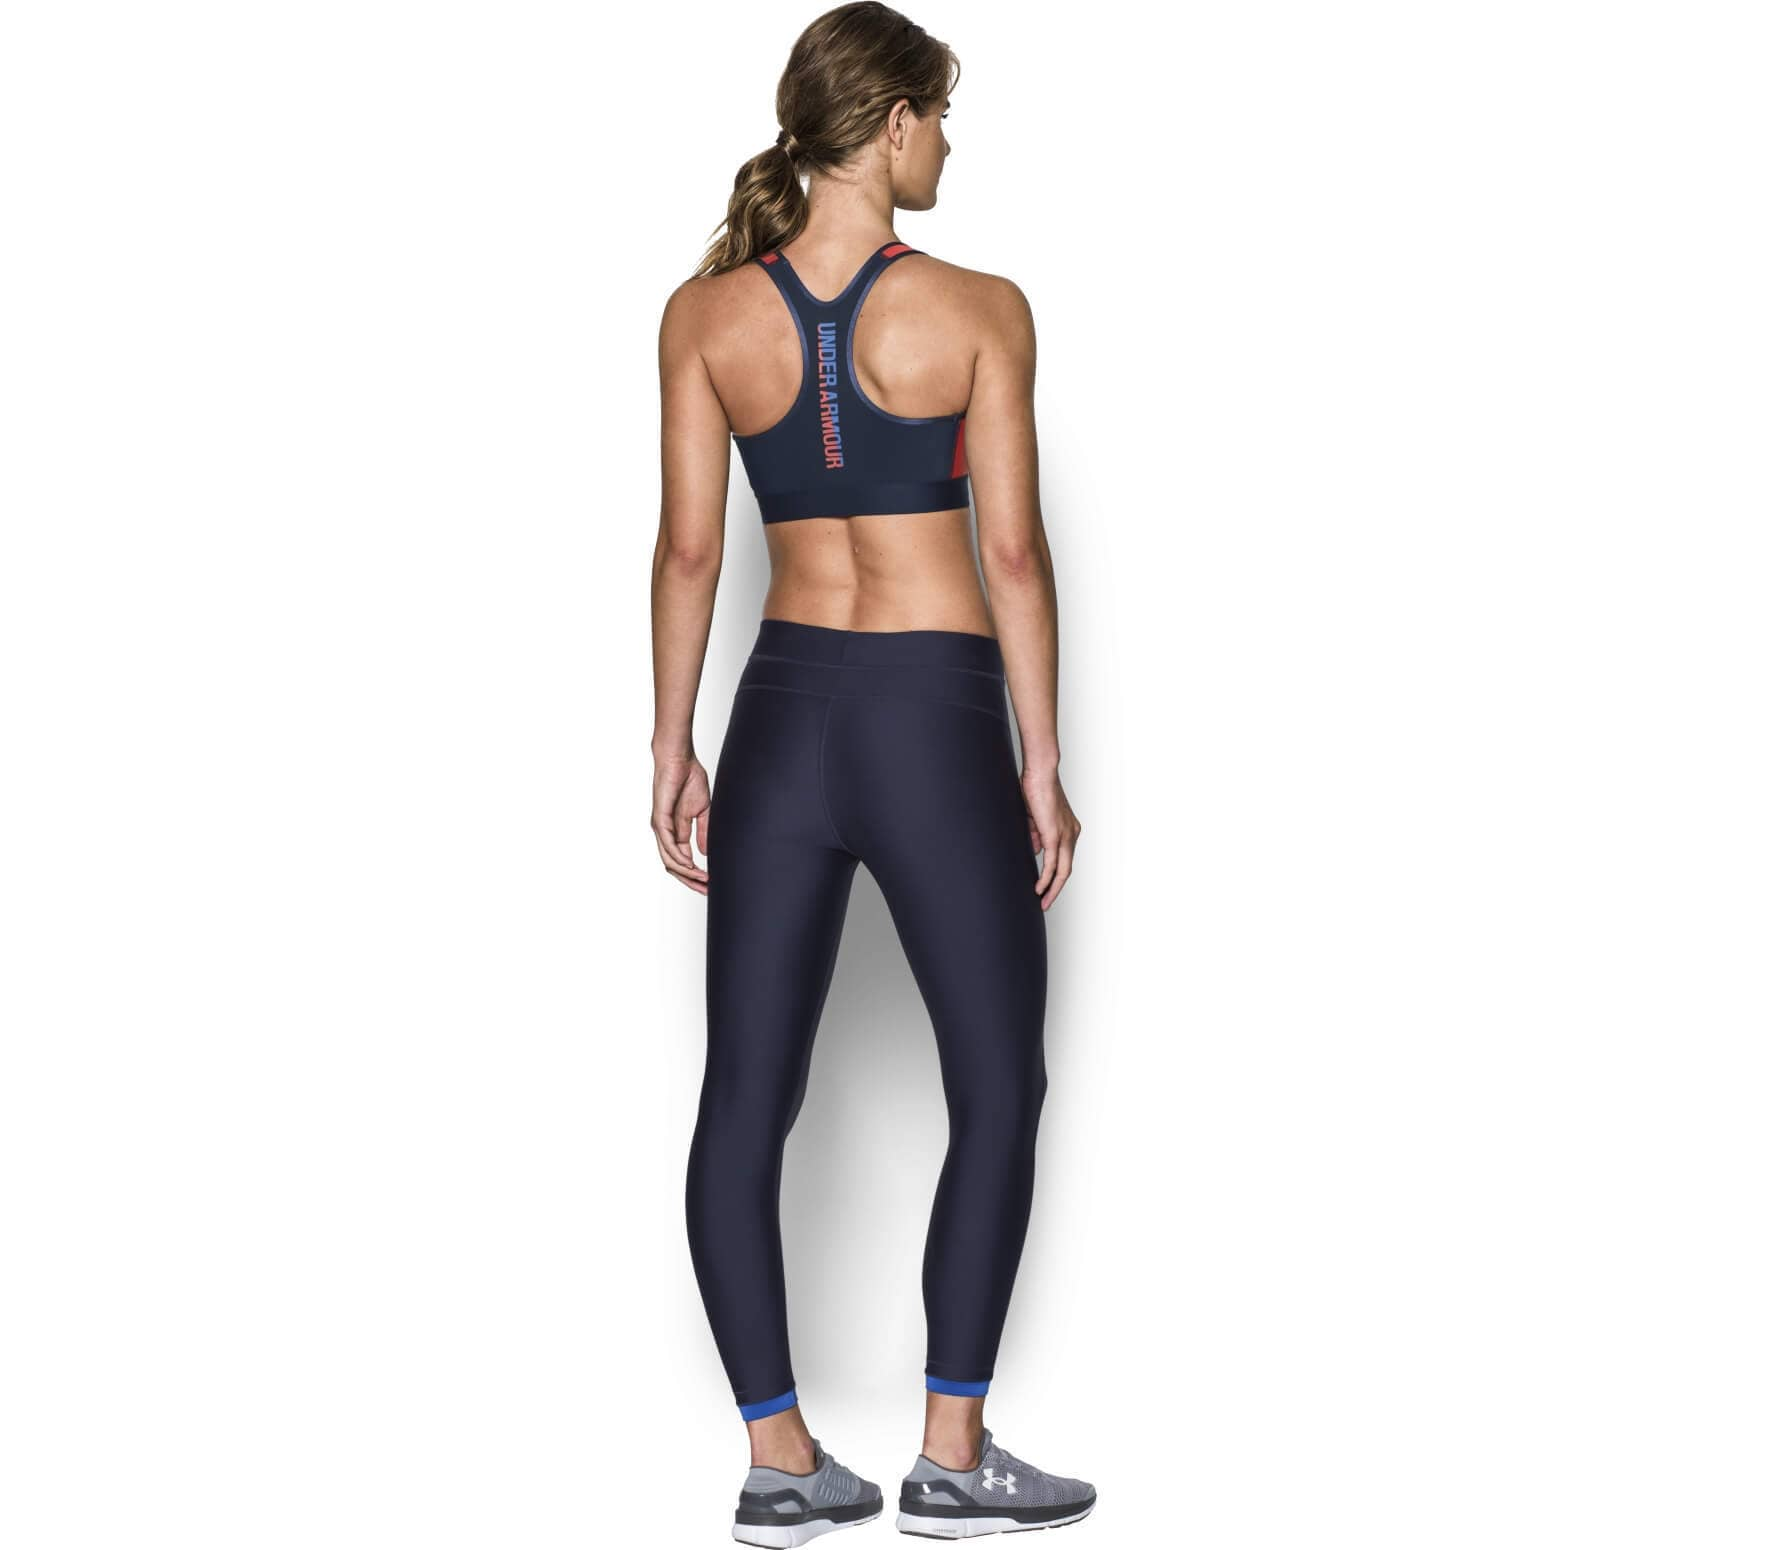 1c0aaa3119 Under Armour - Armour Mid Graphic women s training bra (red blue ...